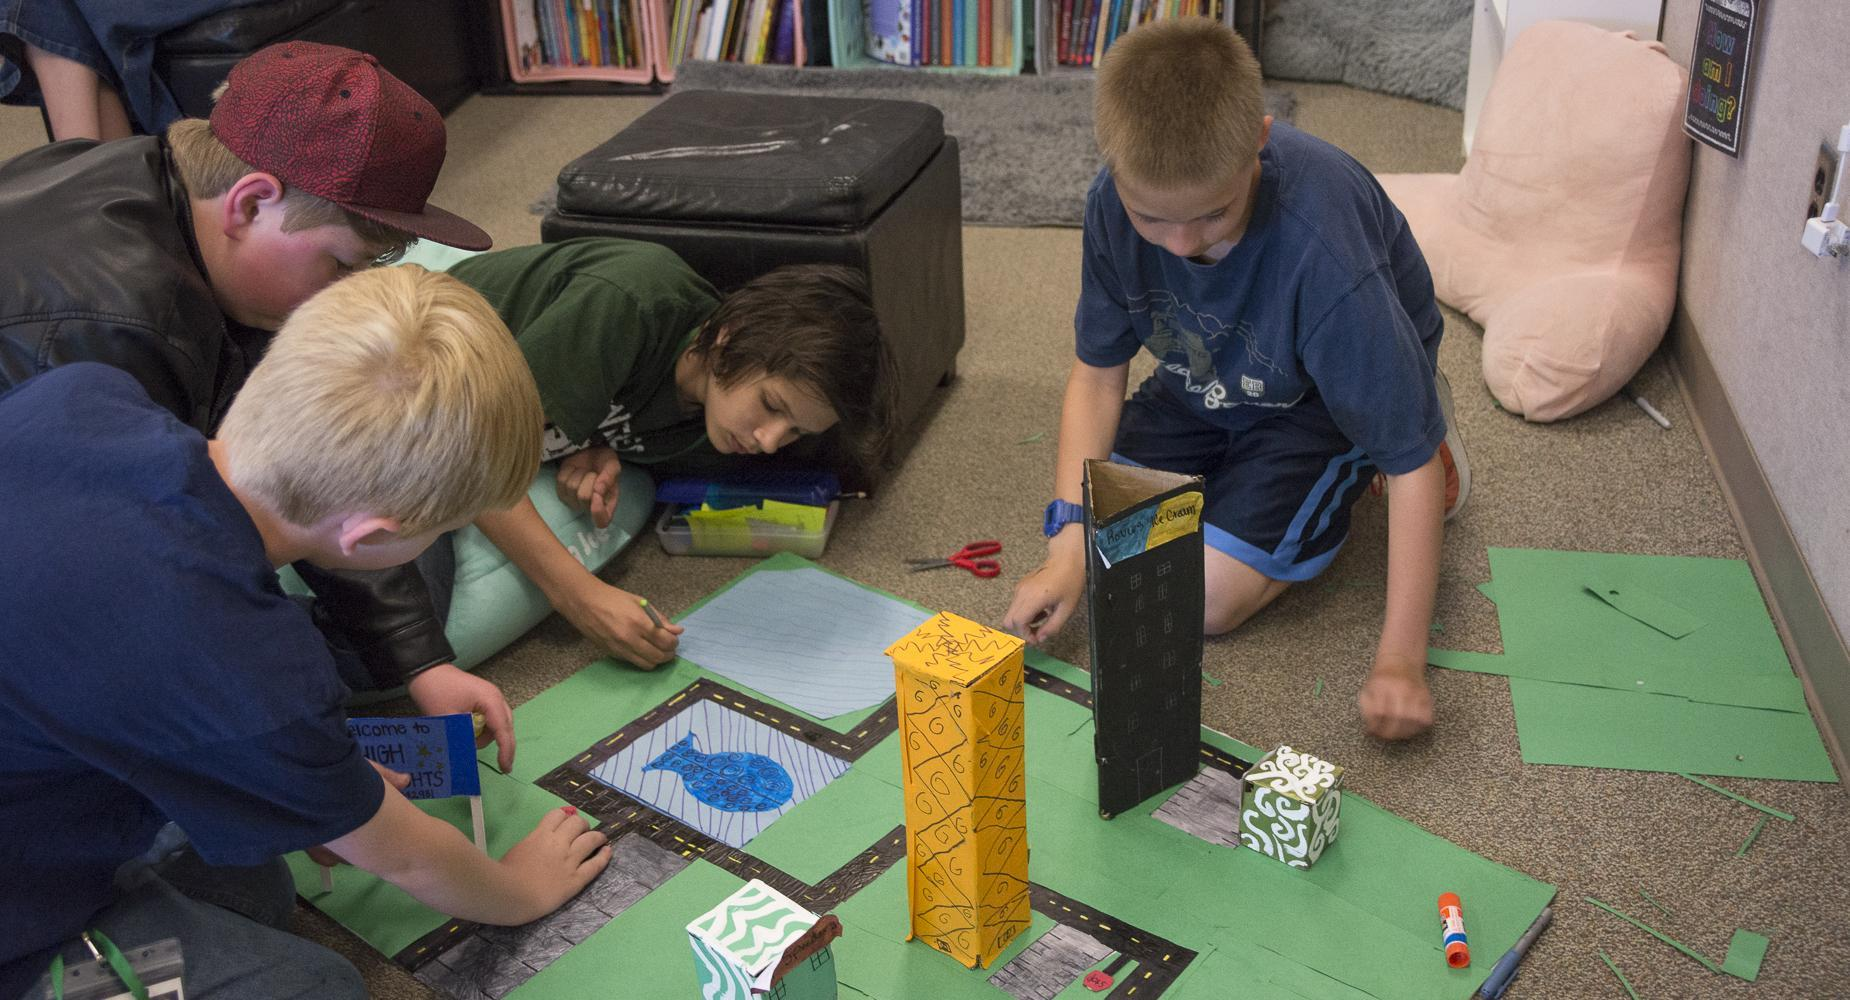 Four boys work on project on floor of classroom